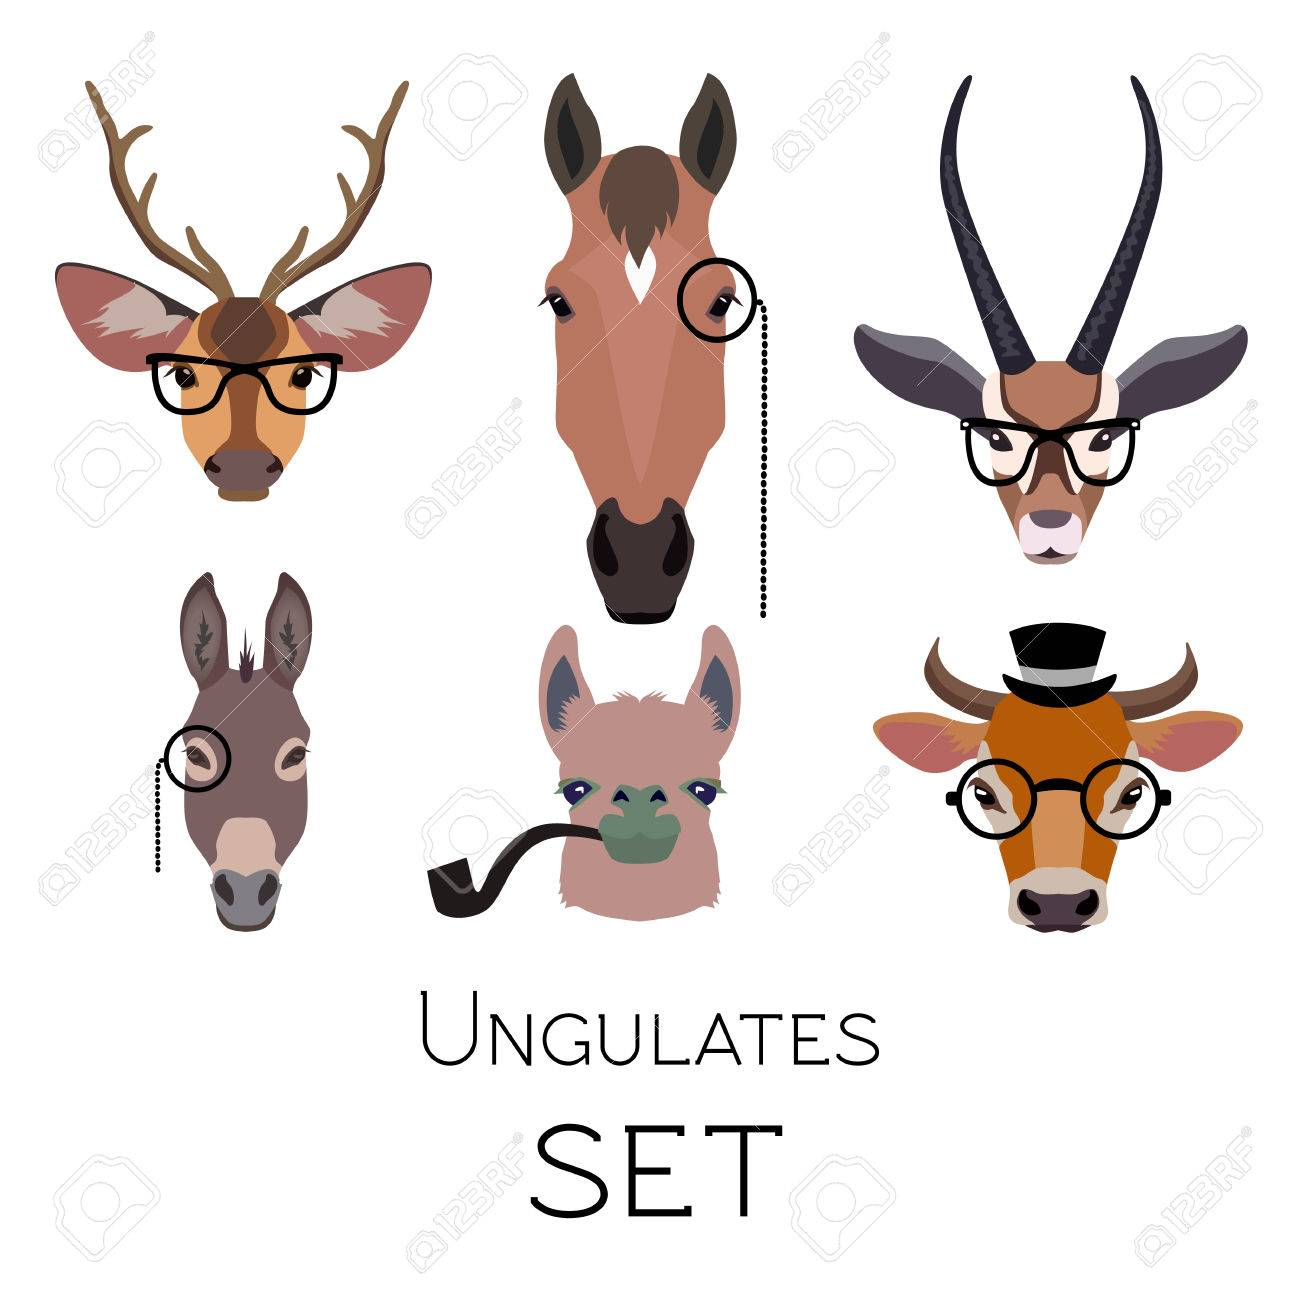 580362fa659 Vector - Vector hipster ungulates wearing monocle glasses or tobacco pipe  cloven hoofed animals set. Lama deer antelope donkey horse isolated Poster  banner ...